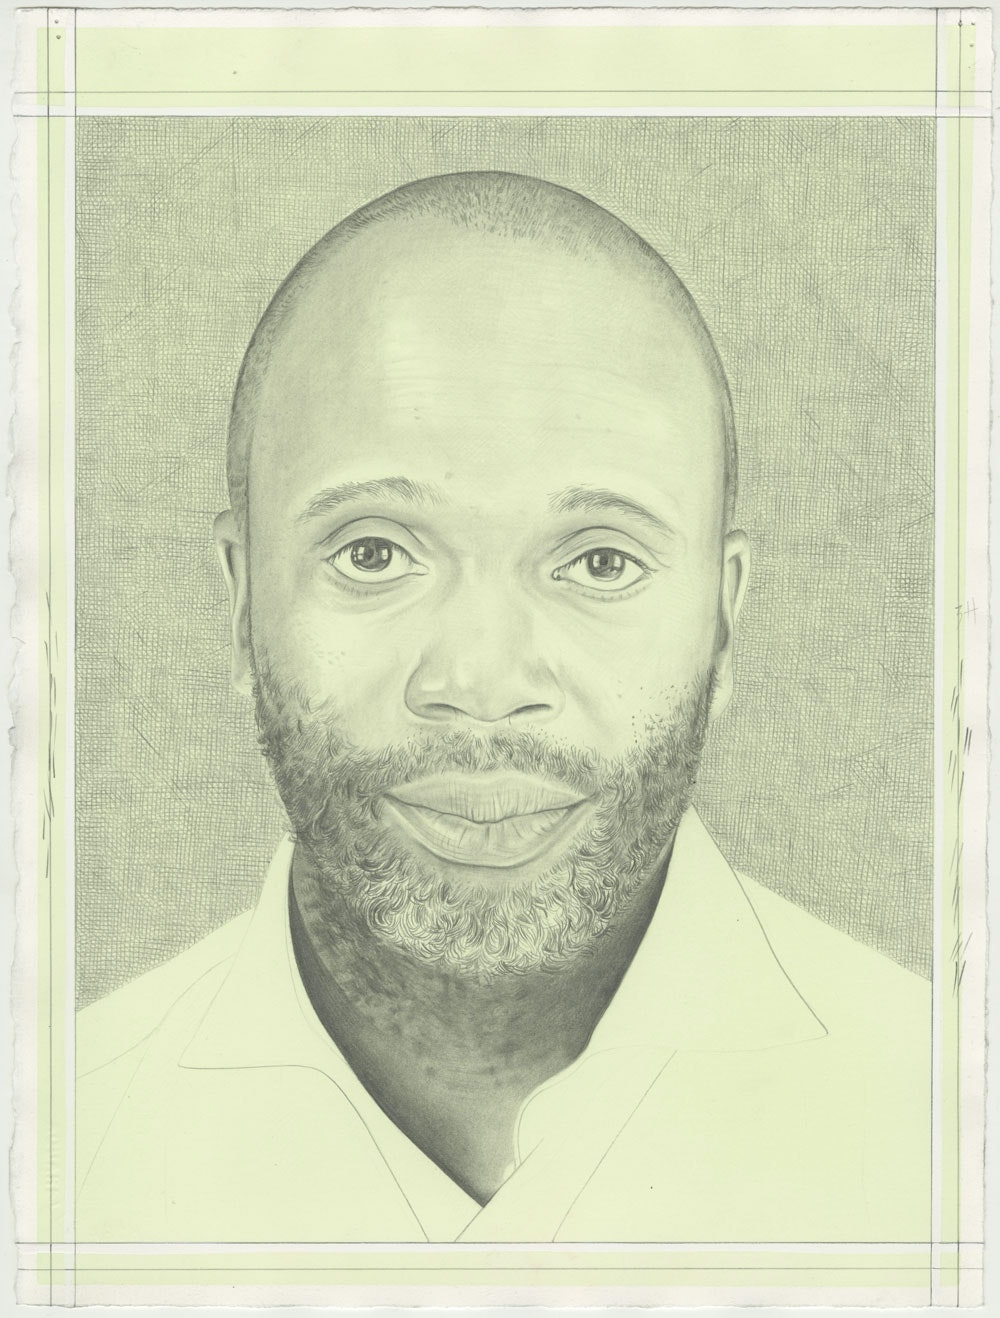 Portrait of Theaster Gates, pencil on paper by Phong Bui.